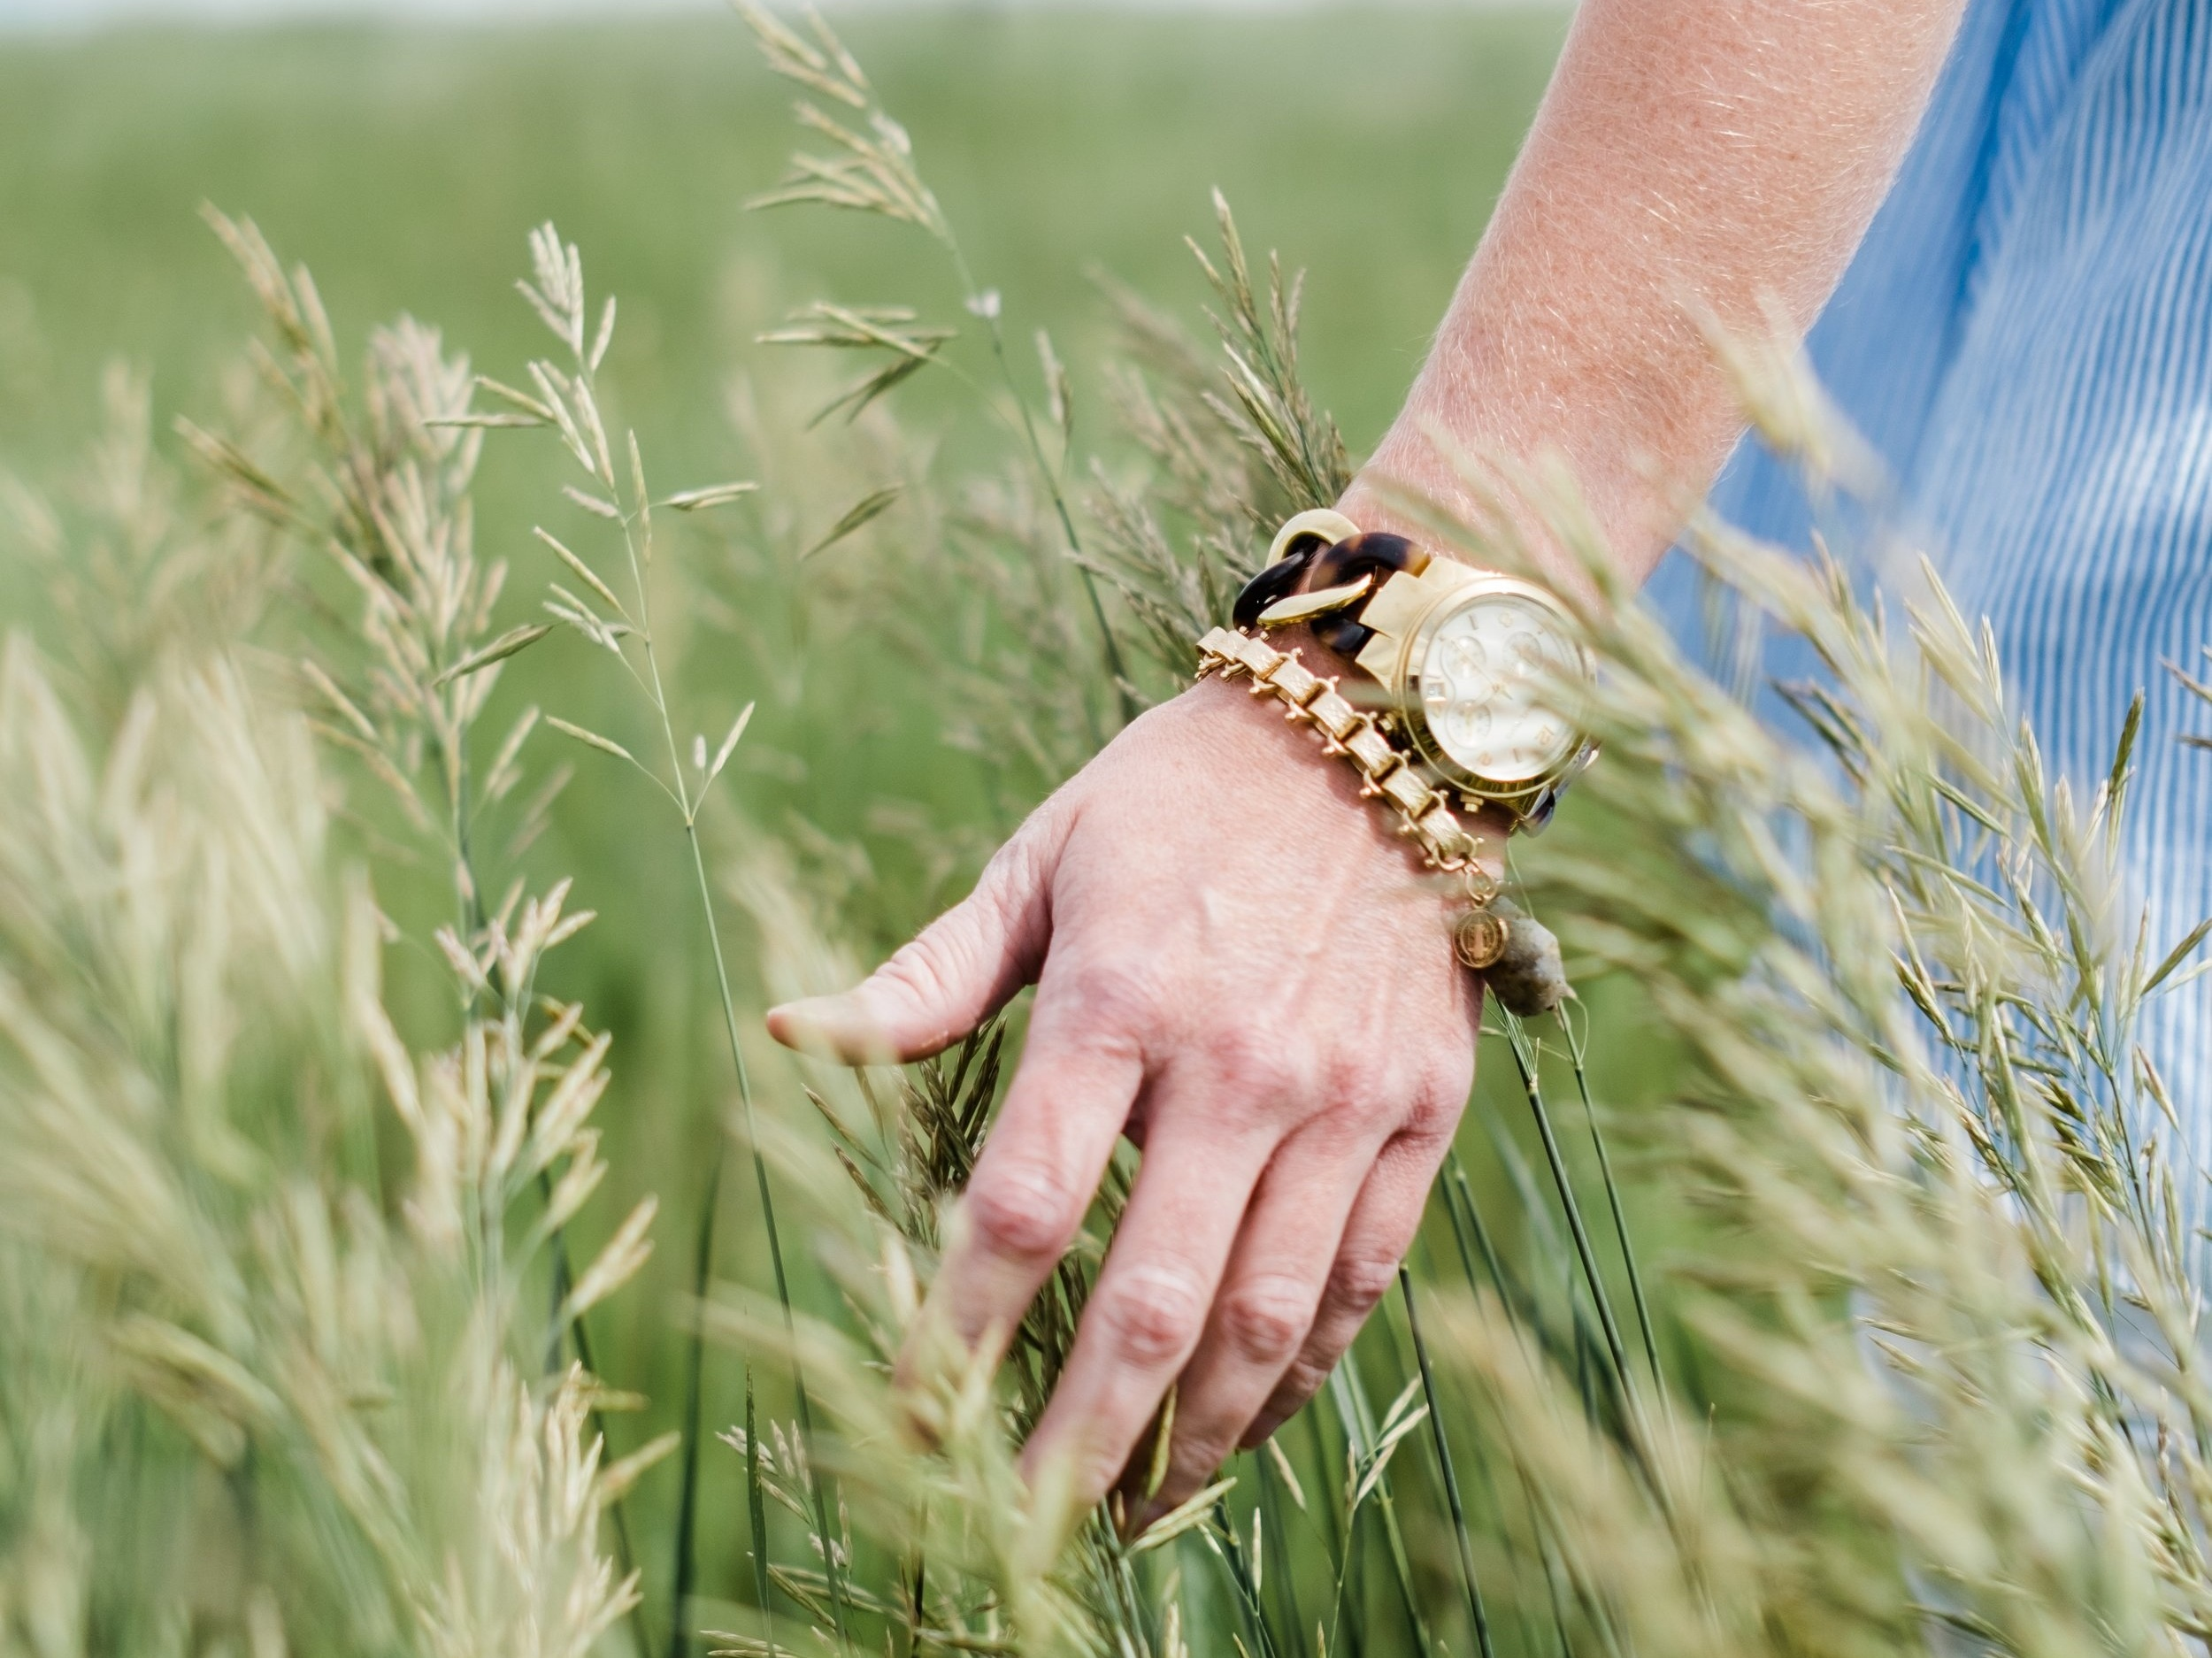 Female hand  and arm with gold watch and bracelet gliding across tall grass